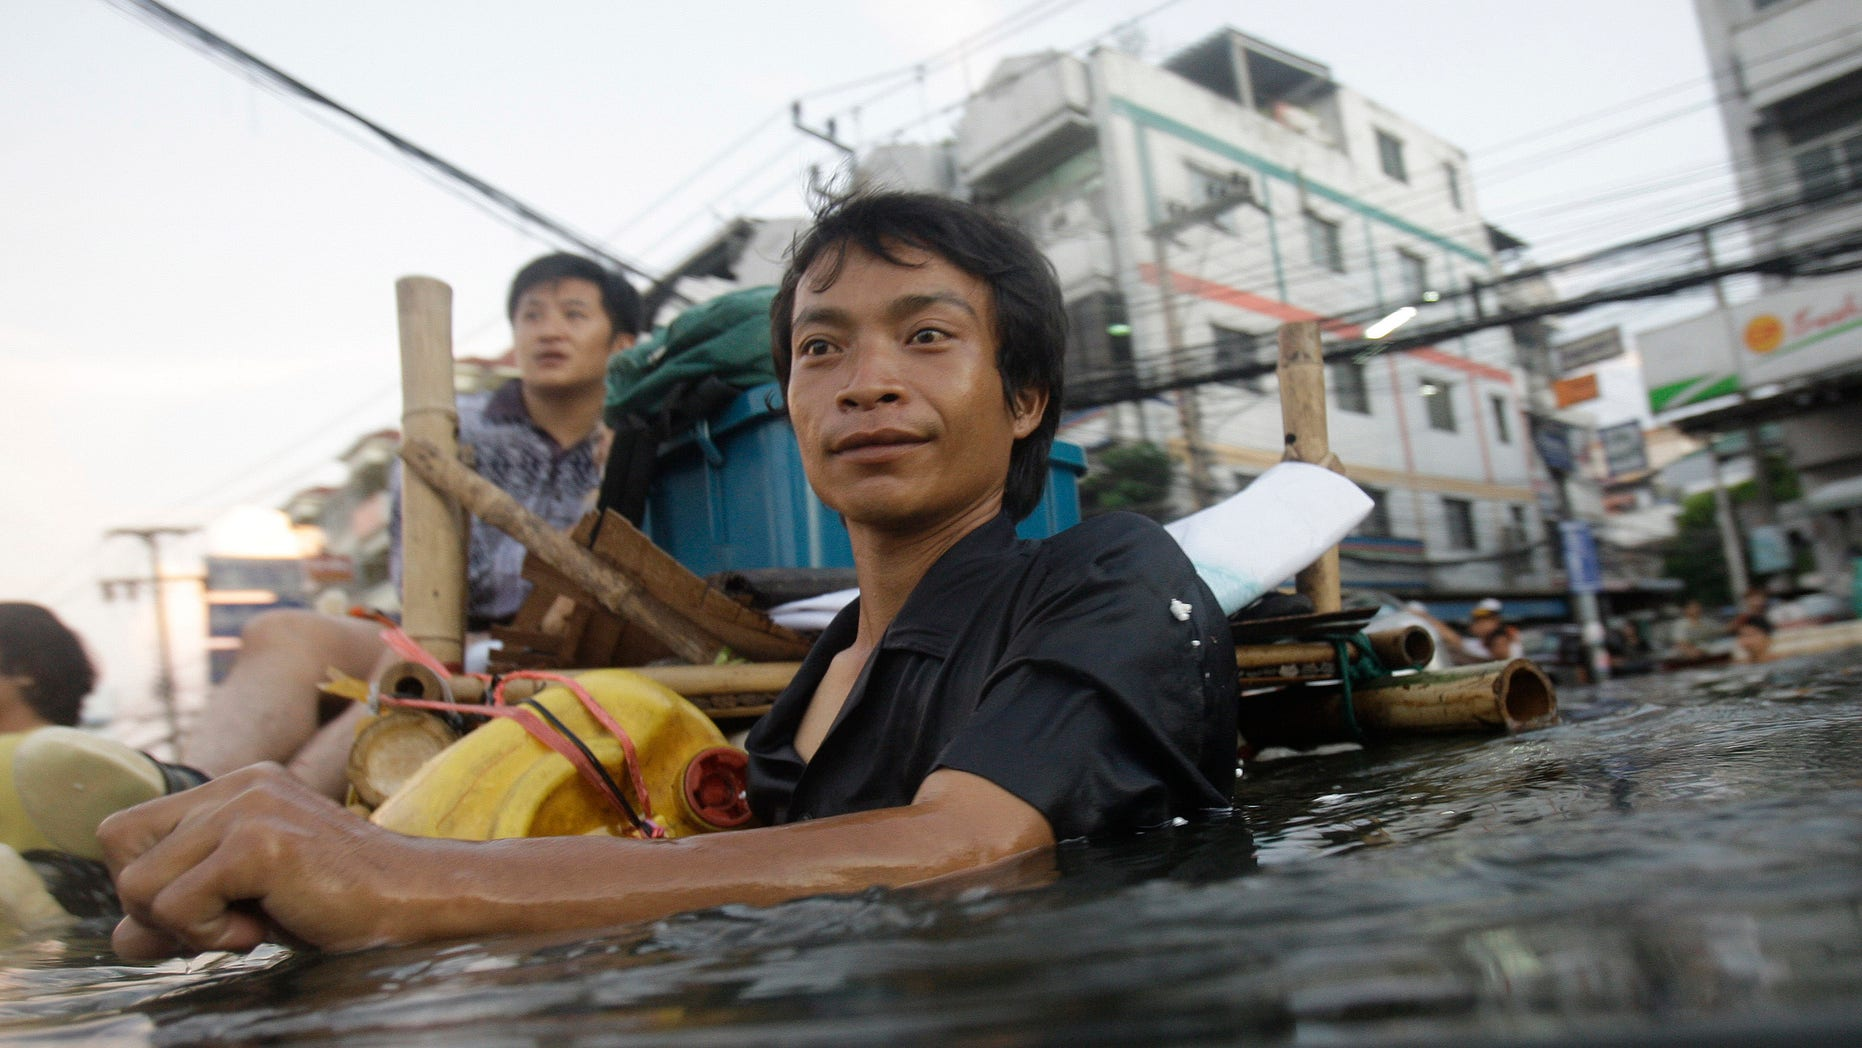 Oct. 27, 2011: A Thai man wades along chest-deep floodwaters in the outskirts of Bangkok, Thailand.